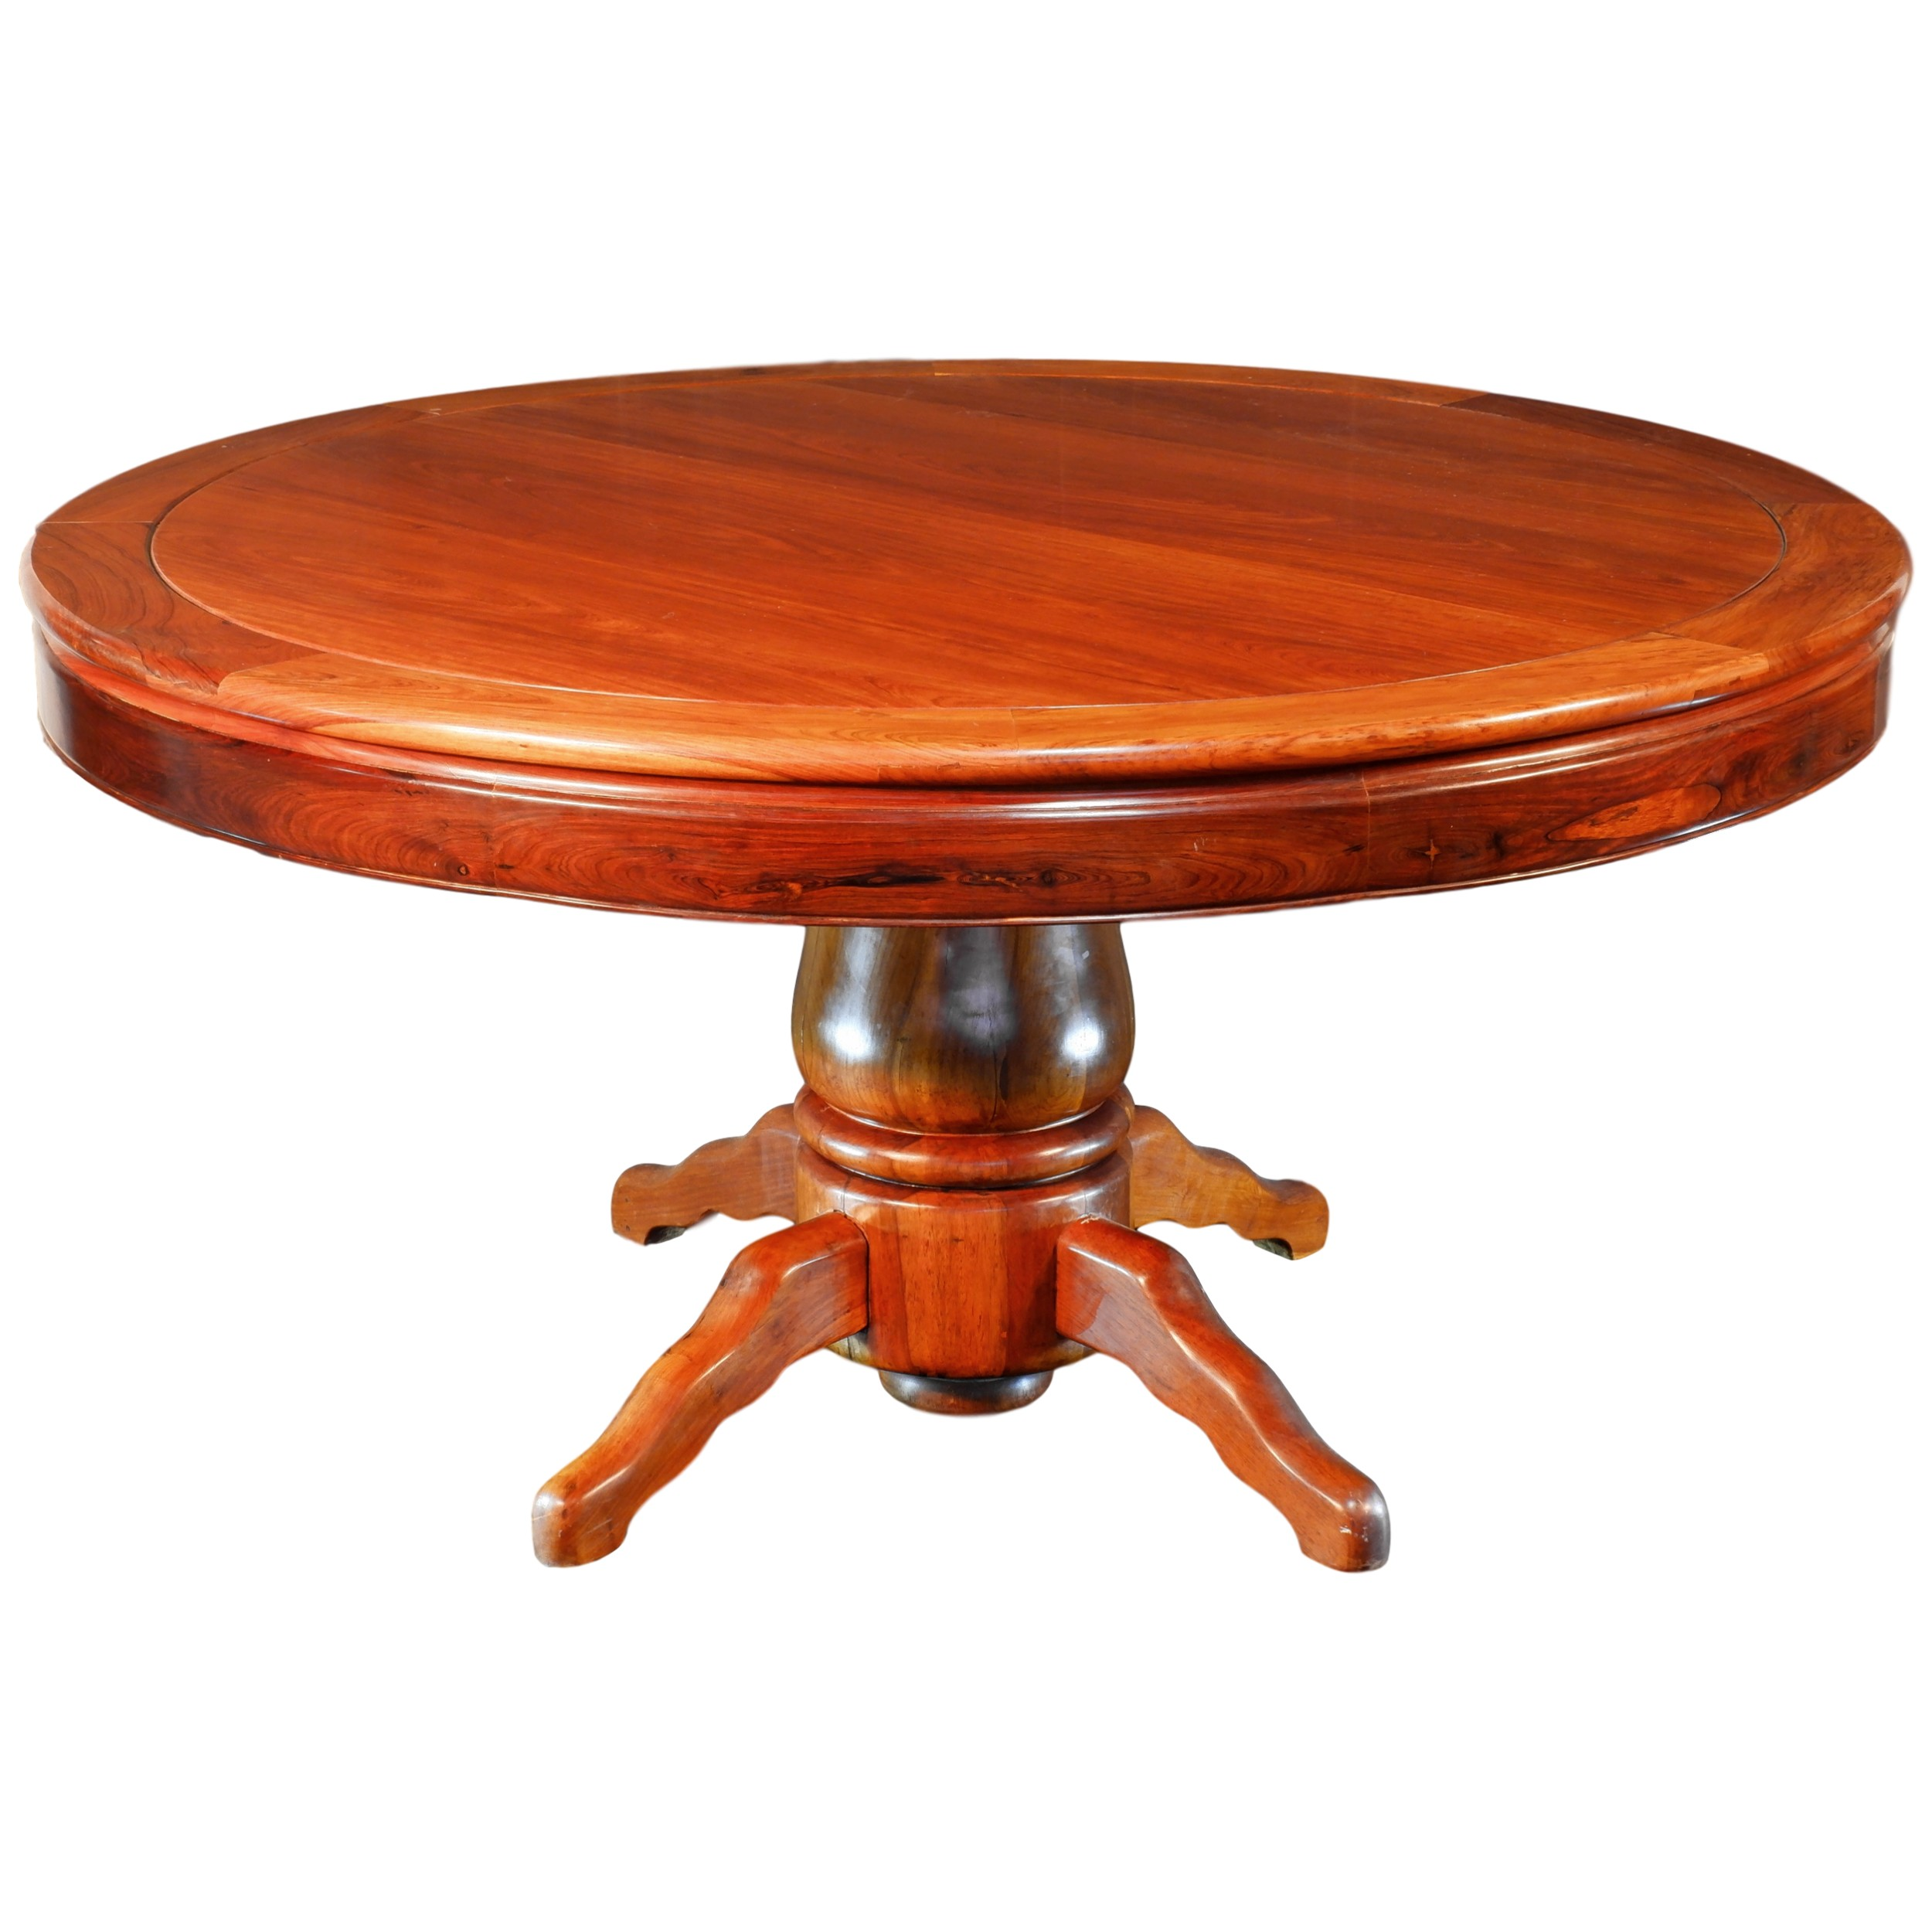 'Impressive Chinese Rosewood Large Centre Table Republic Period Early to Mid 20th Century'